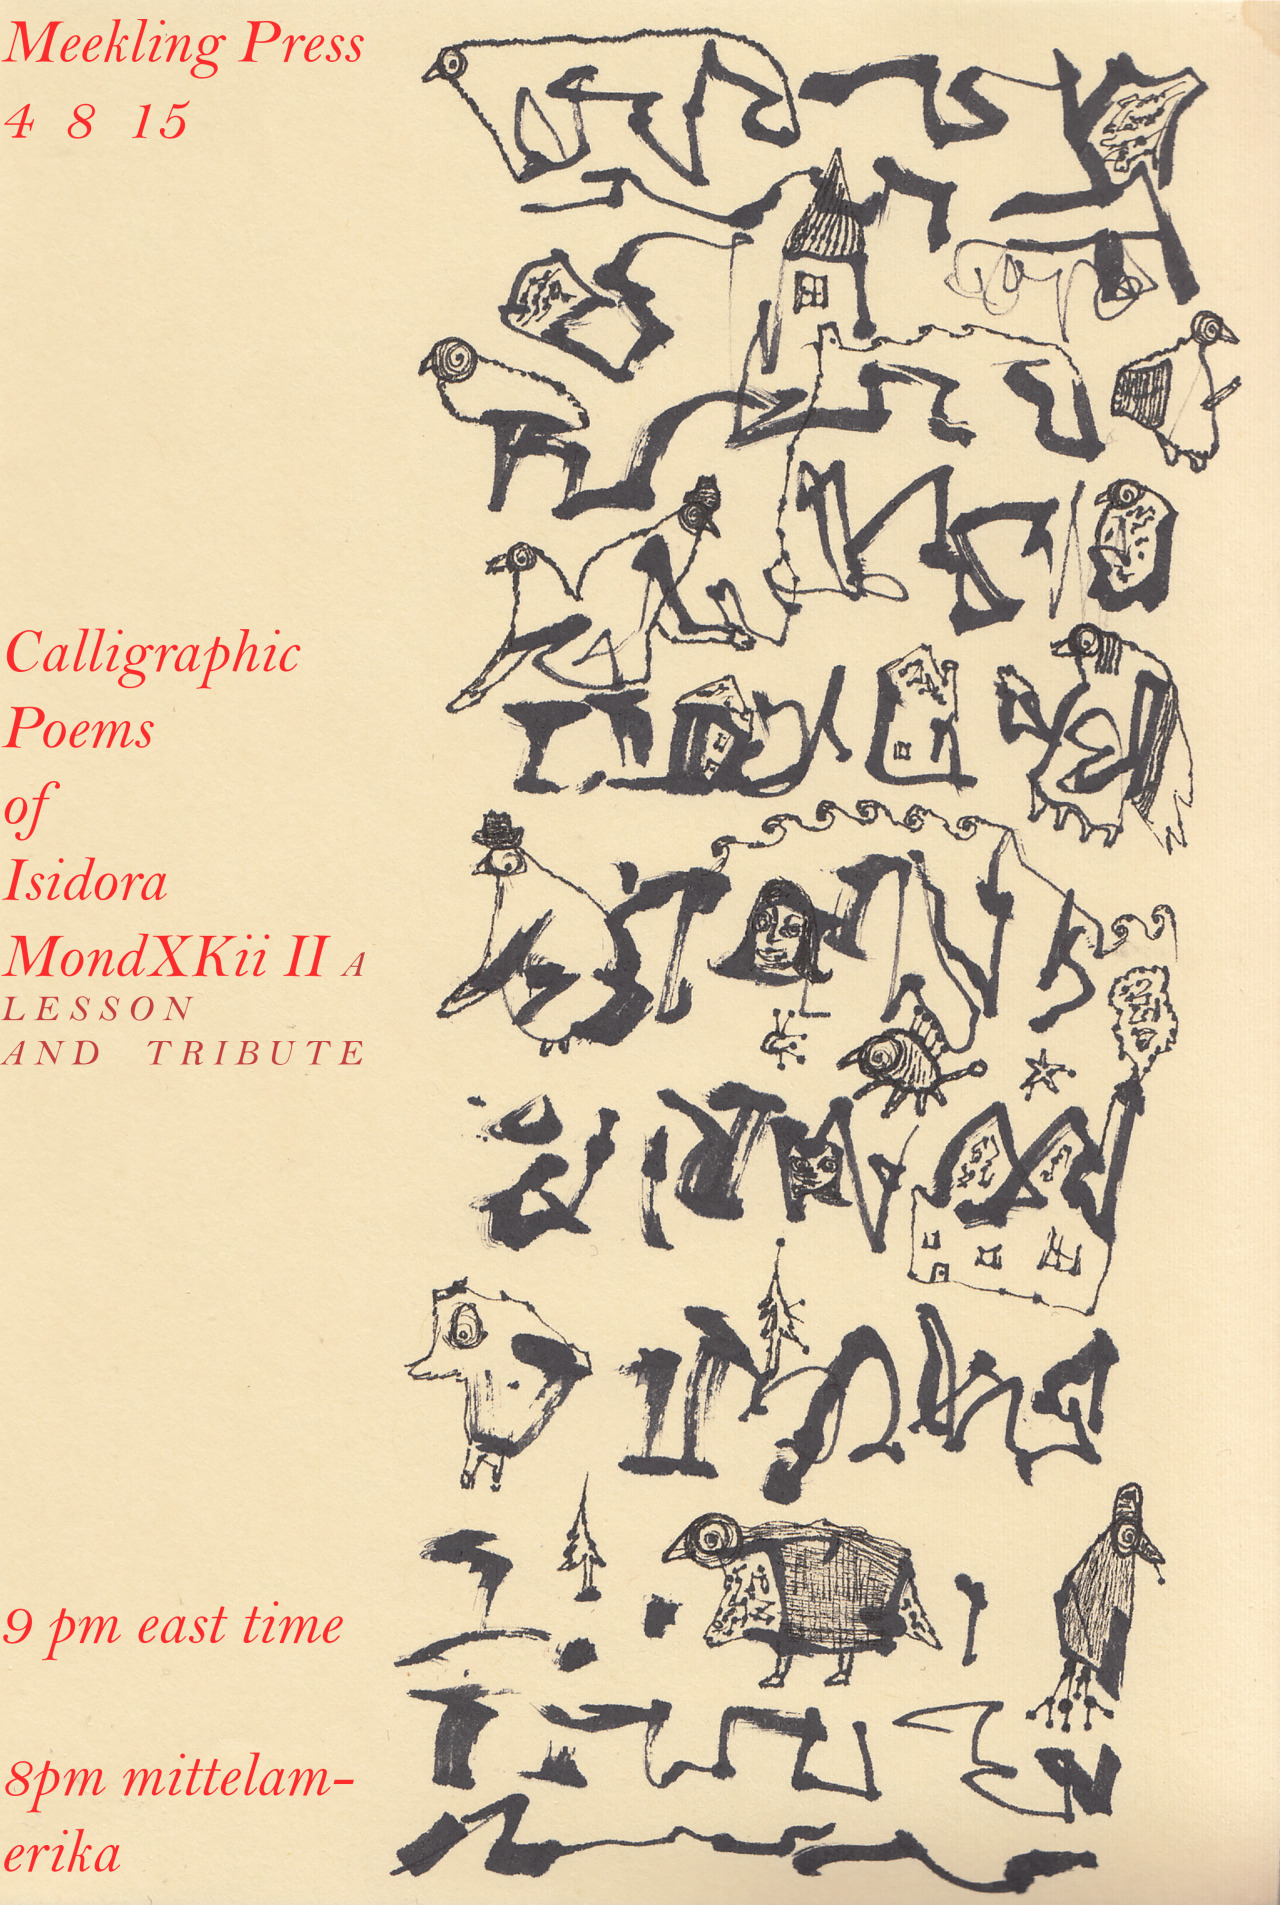 The Calligraphic Poems of Isidora MondXKii II